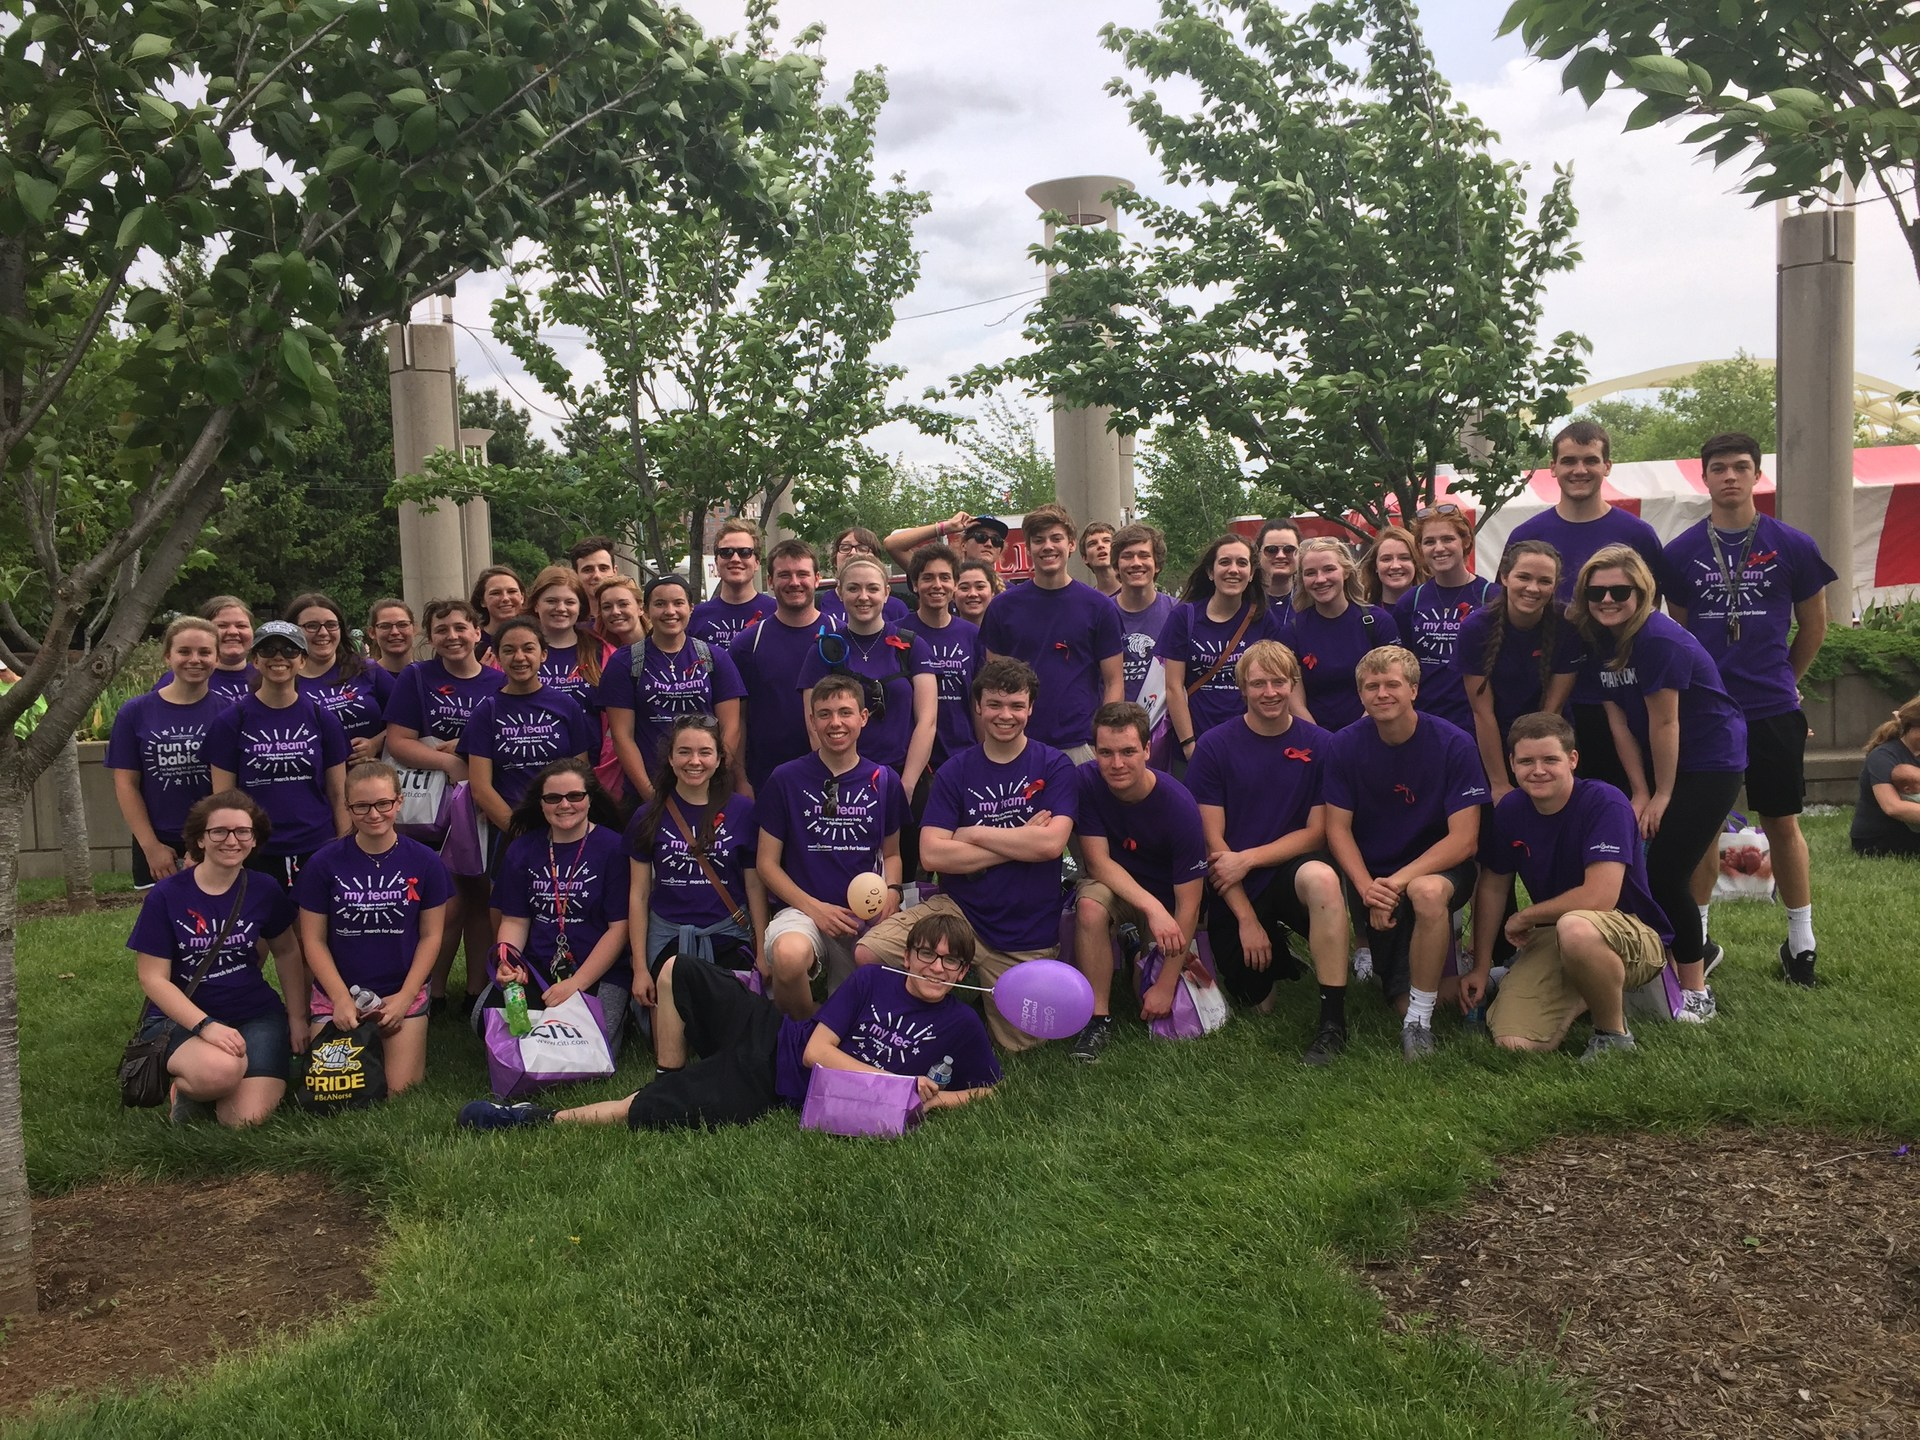 2017 March of Dimes walk